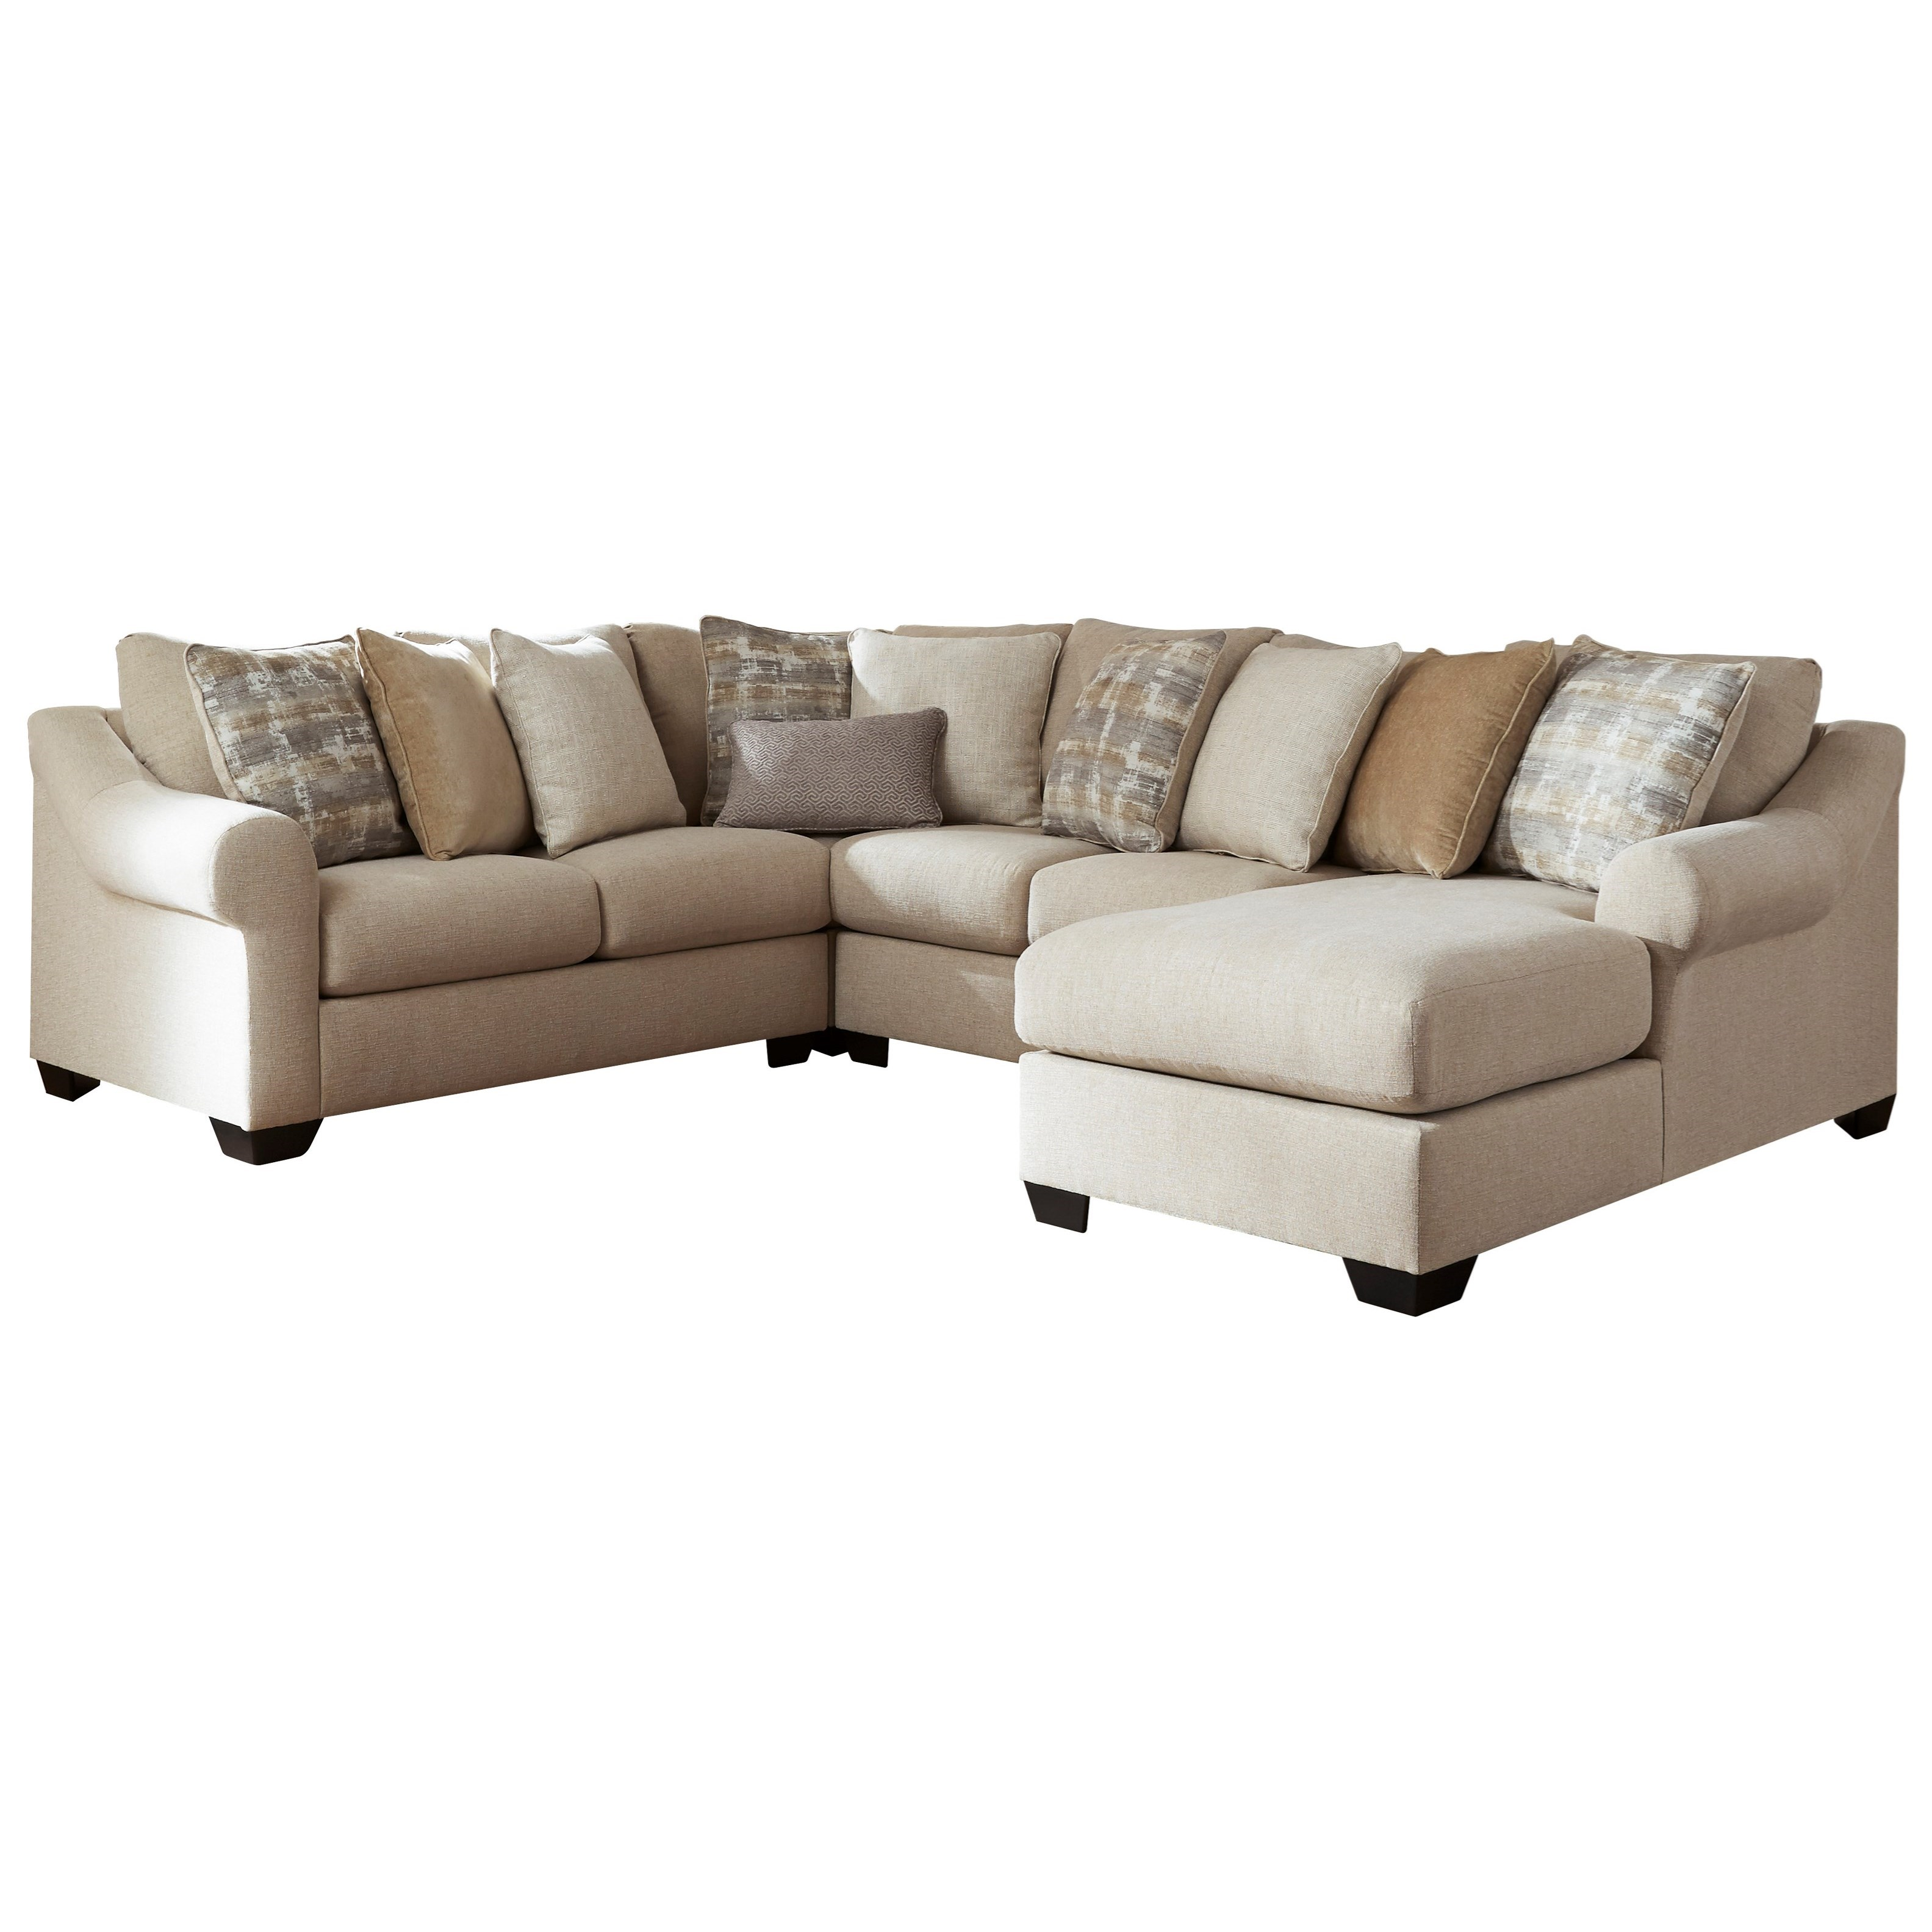 Ingleside 4-Piece Sectional with Chaise by Benchcraft at Beck's Furniture